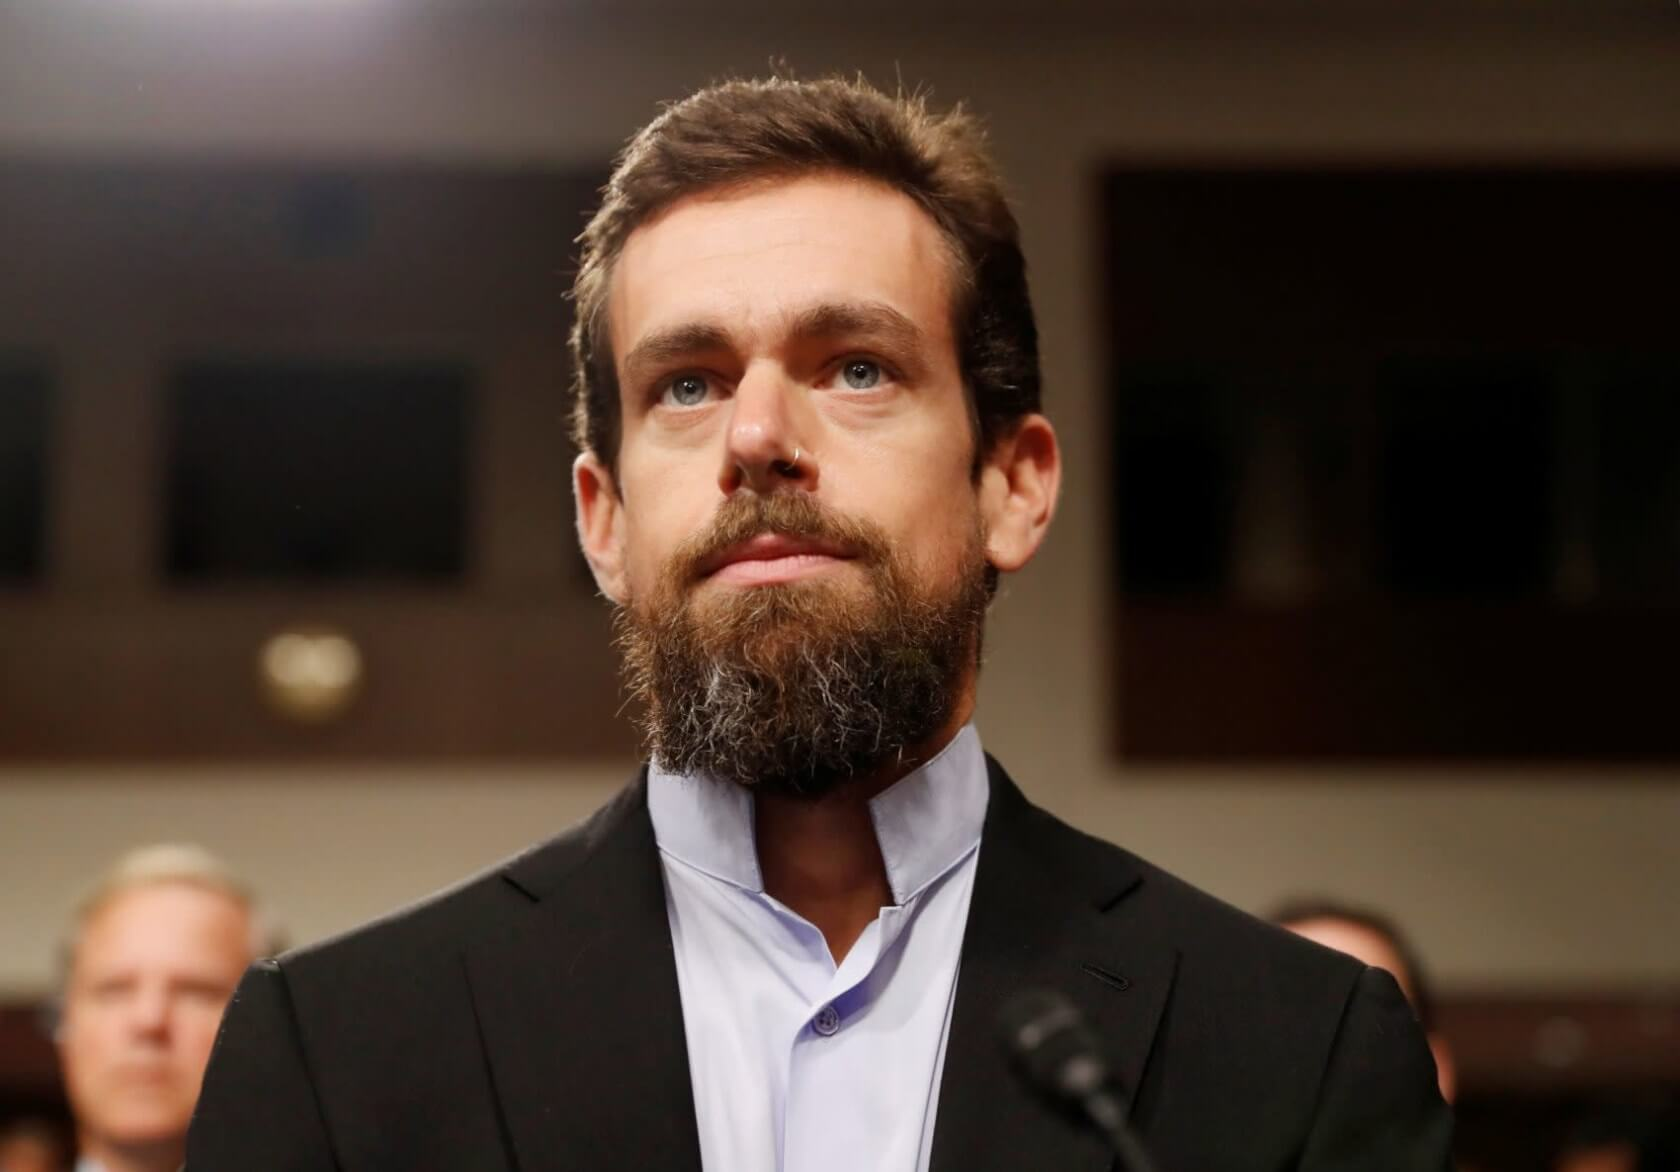 Twitter CEO claims shadow banning of 600,000 accounts was due to faulty 'filtering' algorithms